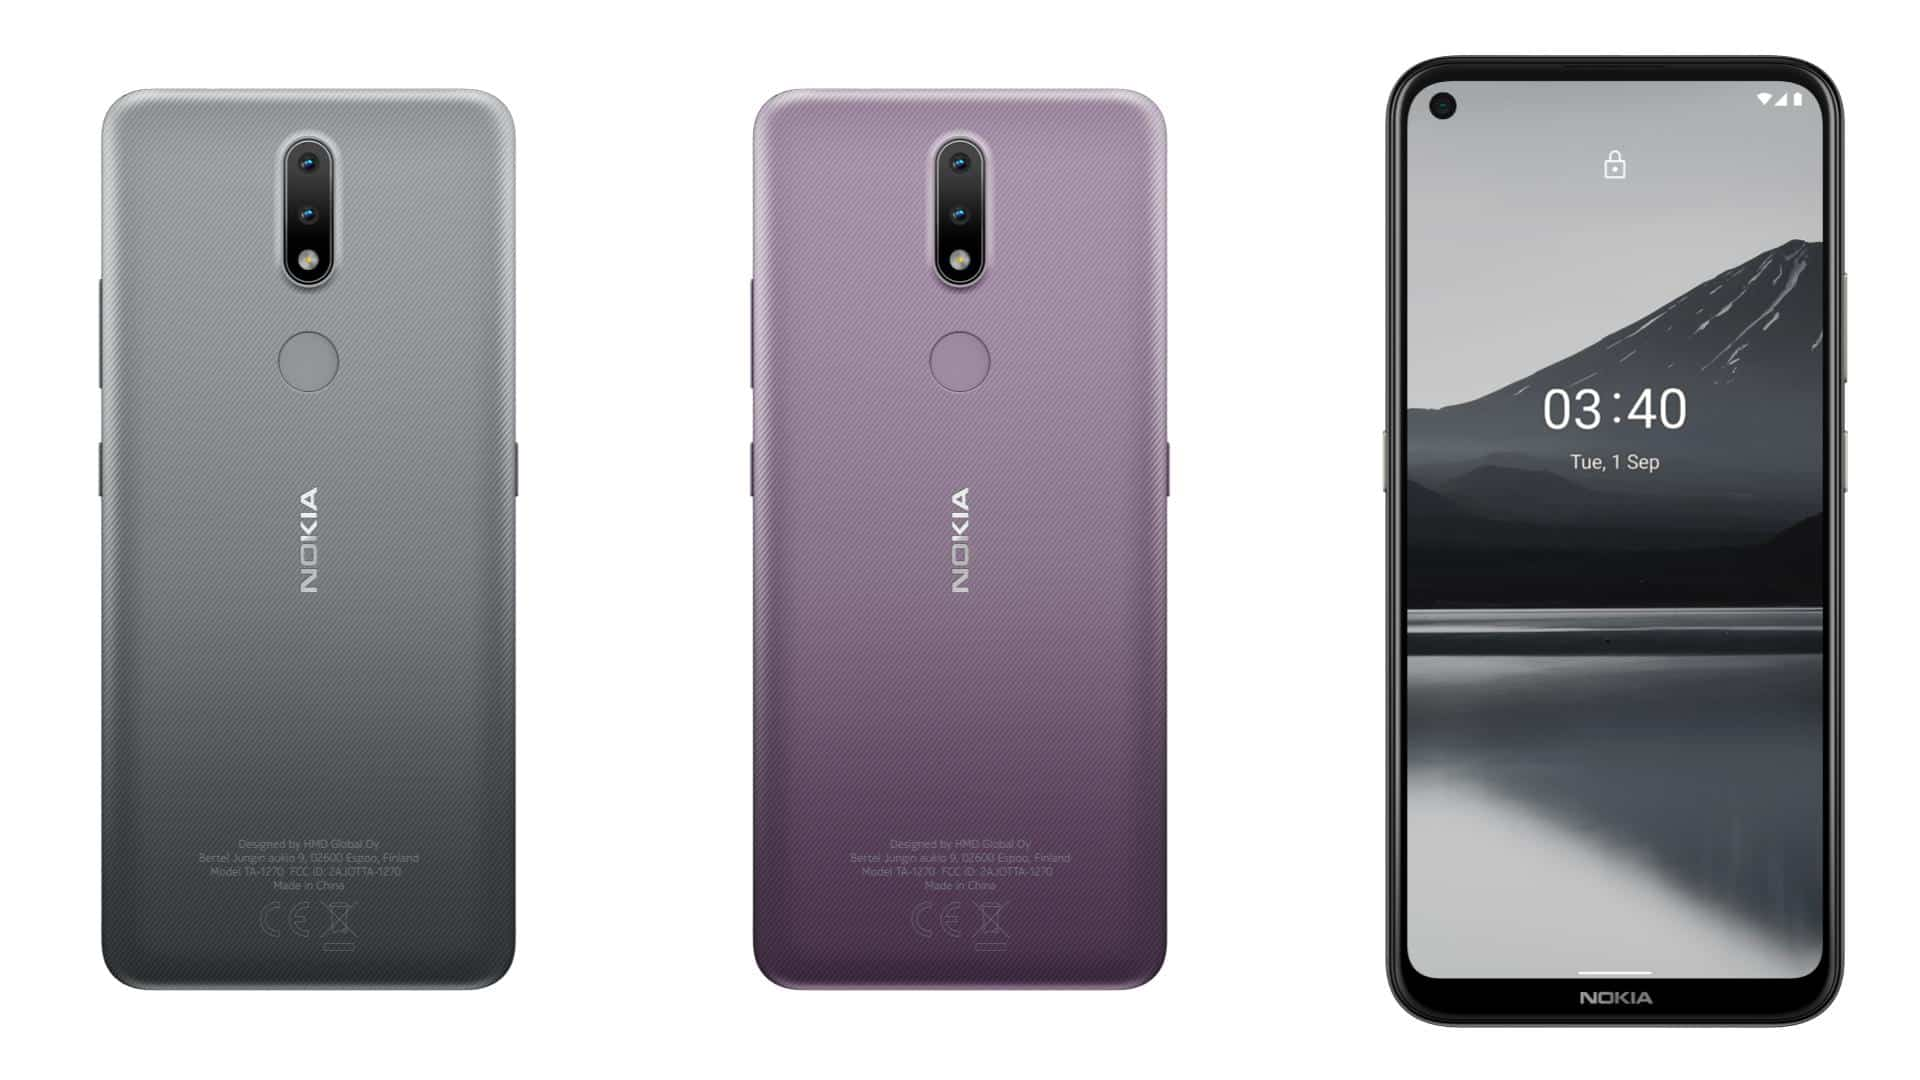 Nokia 2 4 3 4 Bring Great Design Specs Without Killing Your Wallet